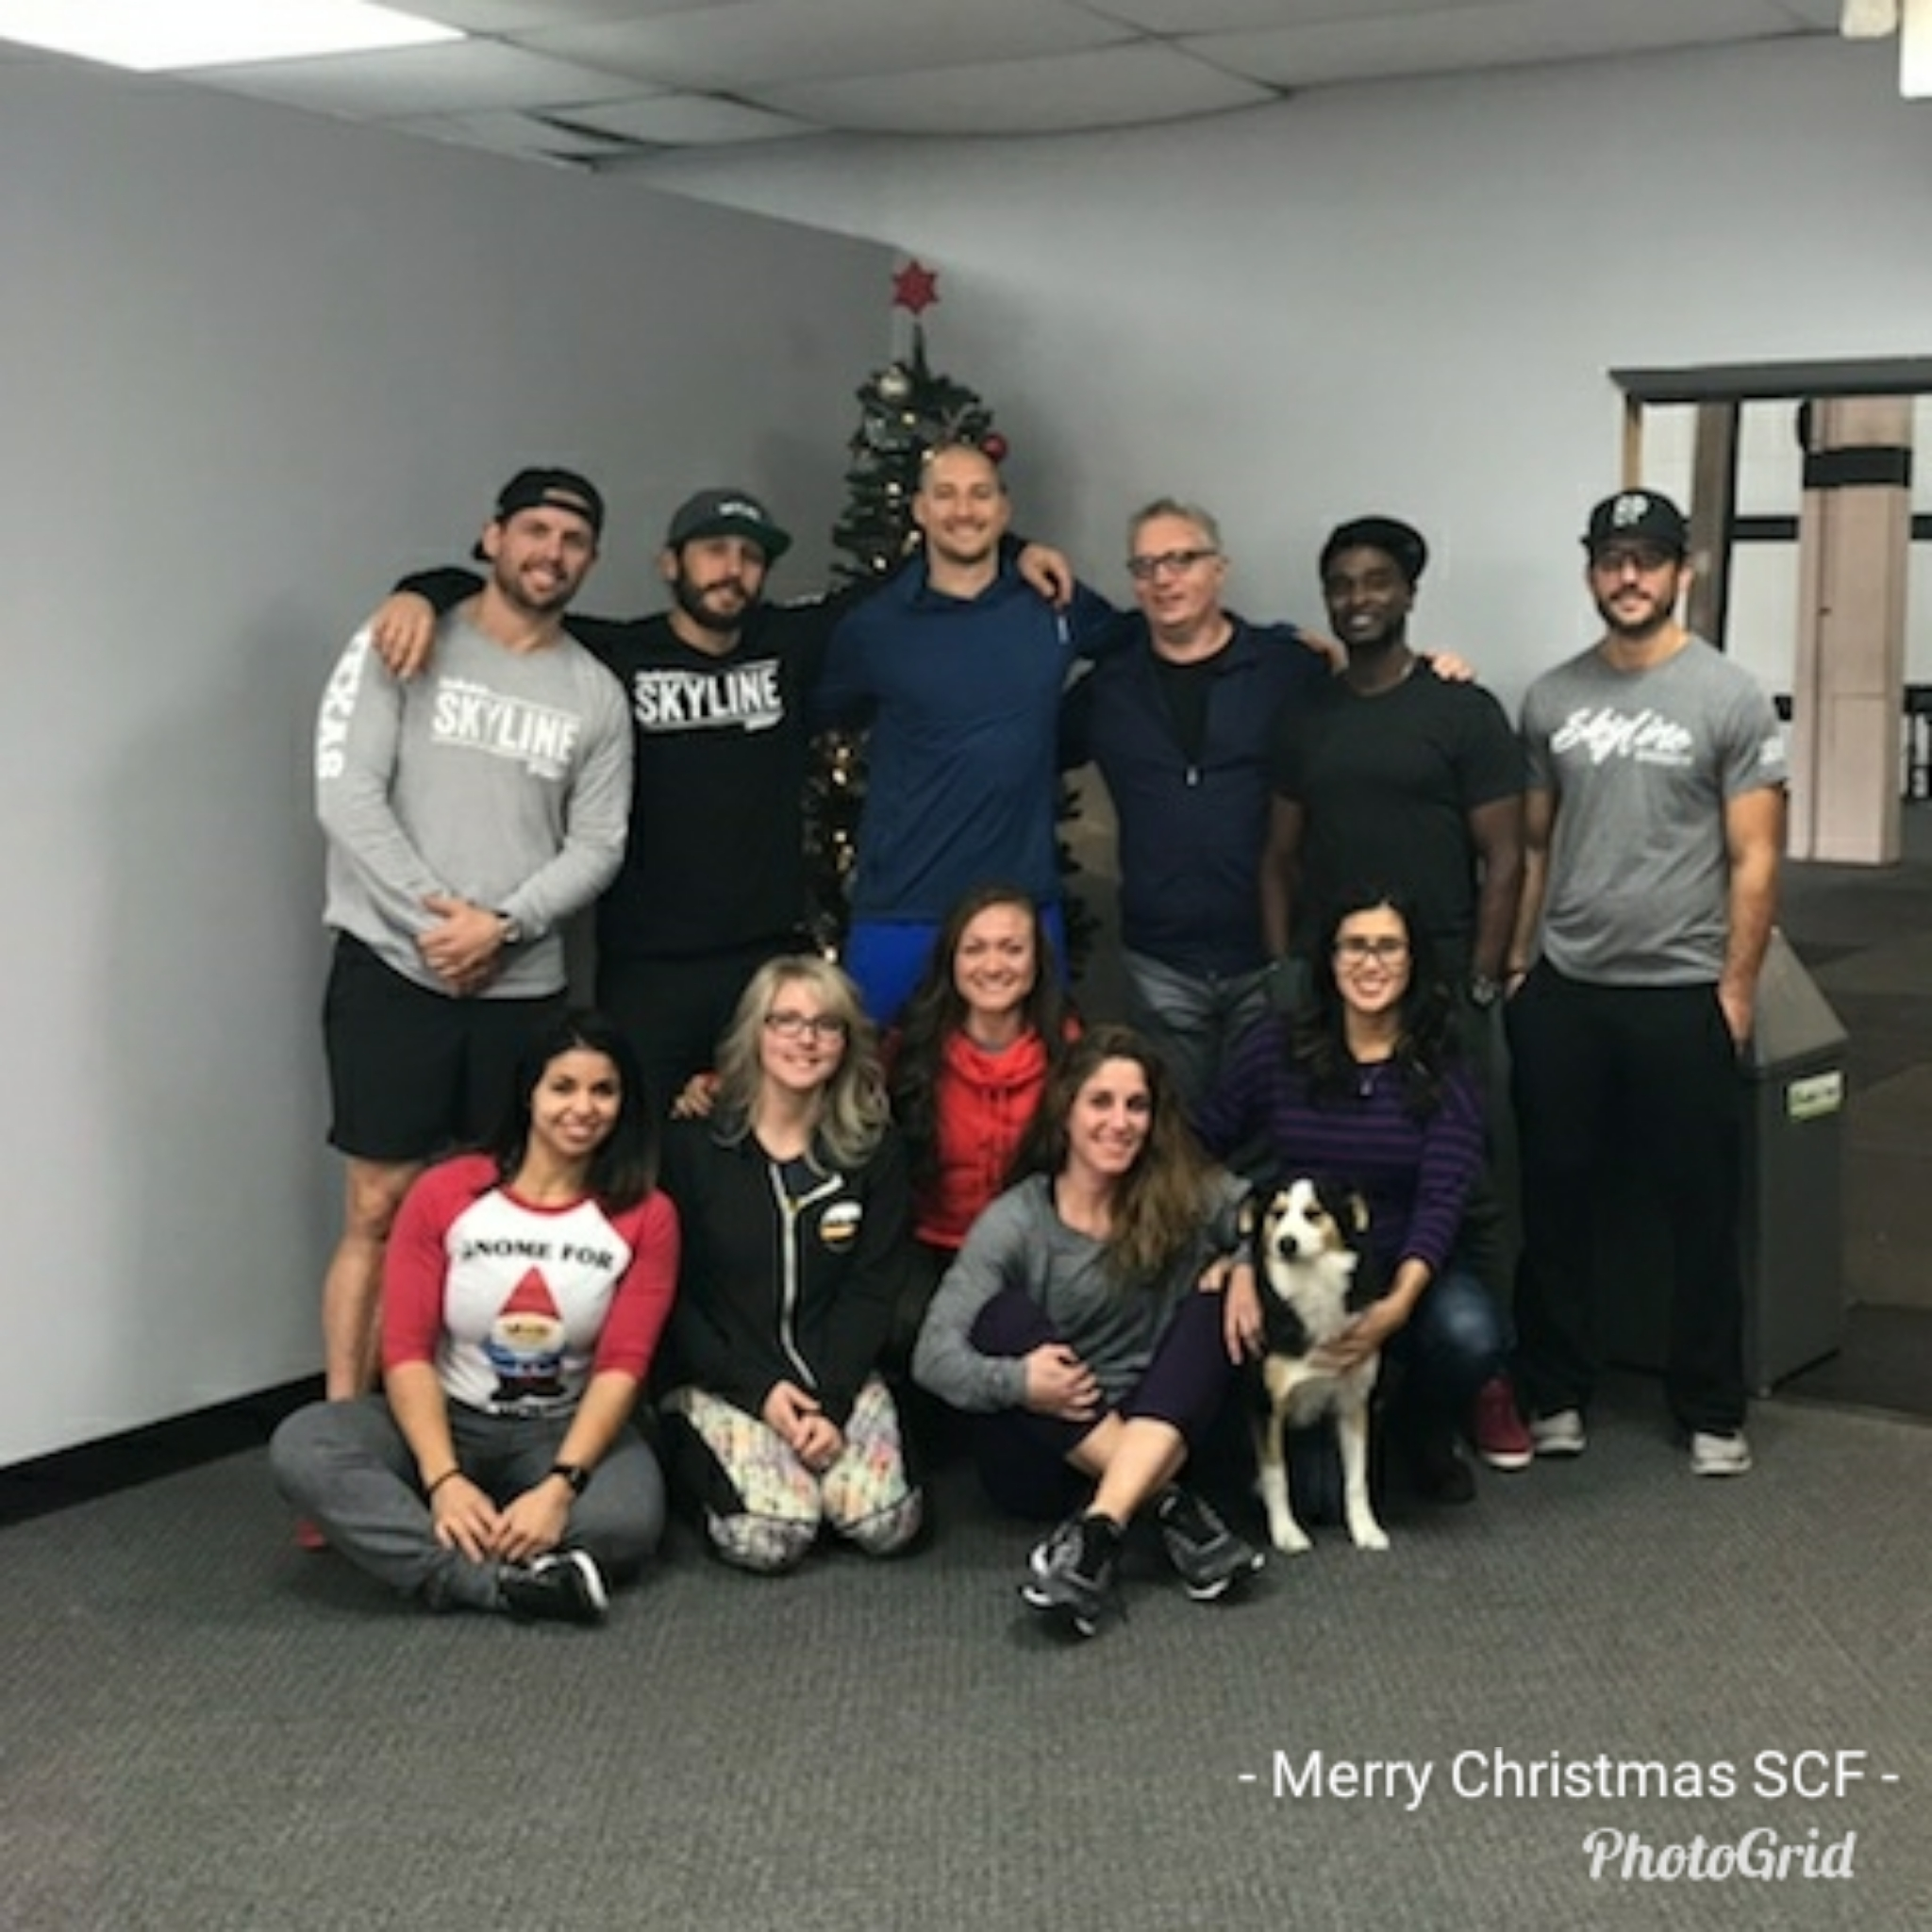 Merry Christmas from Skyline CrossFit!